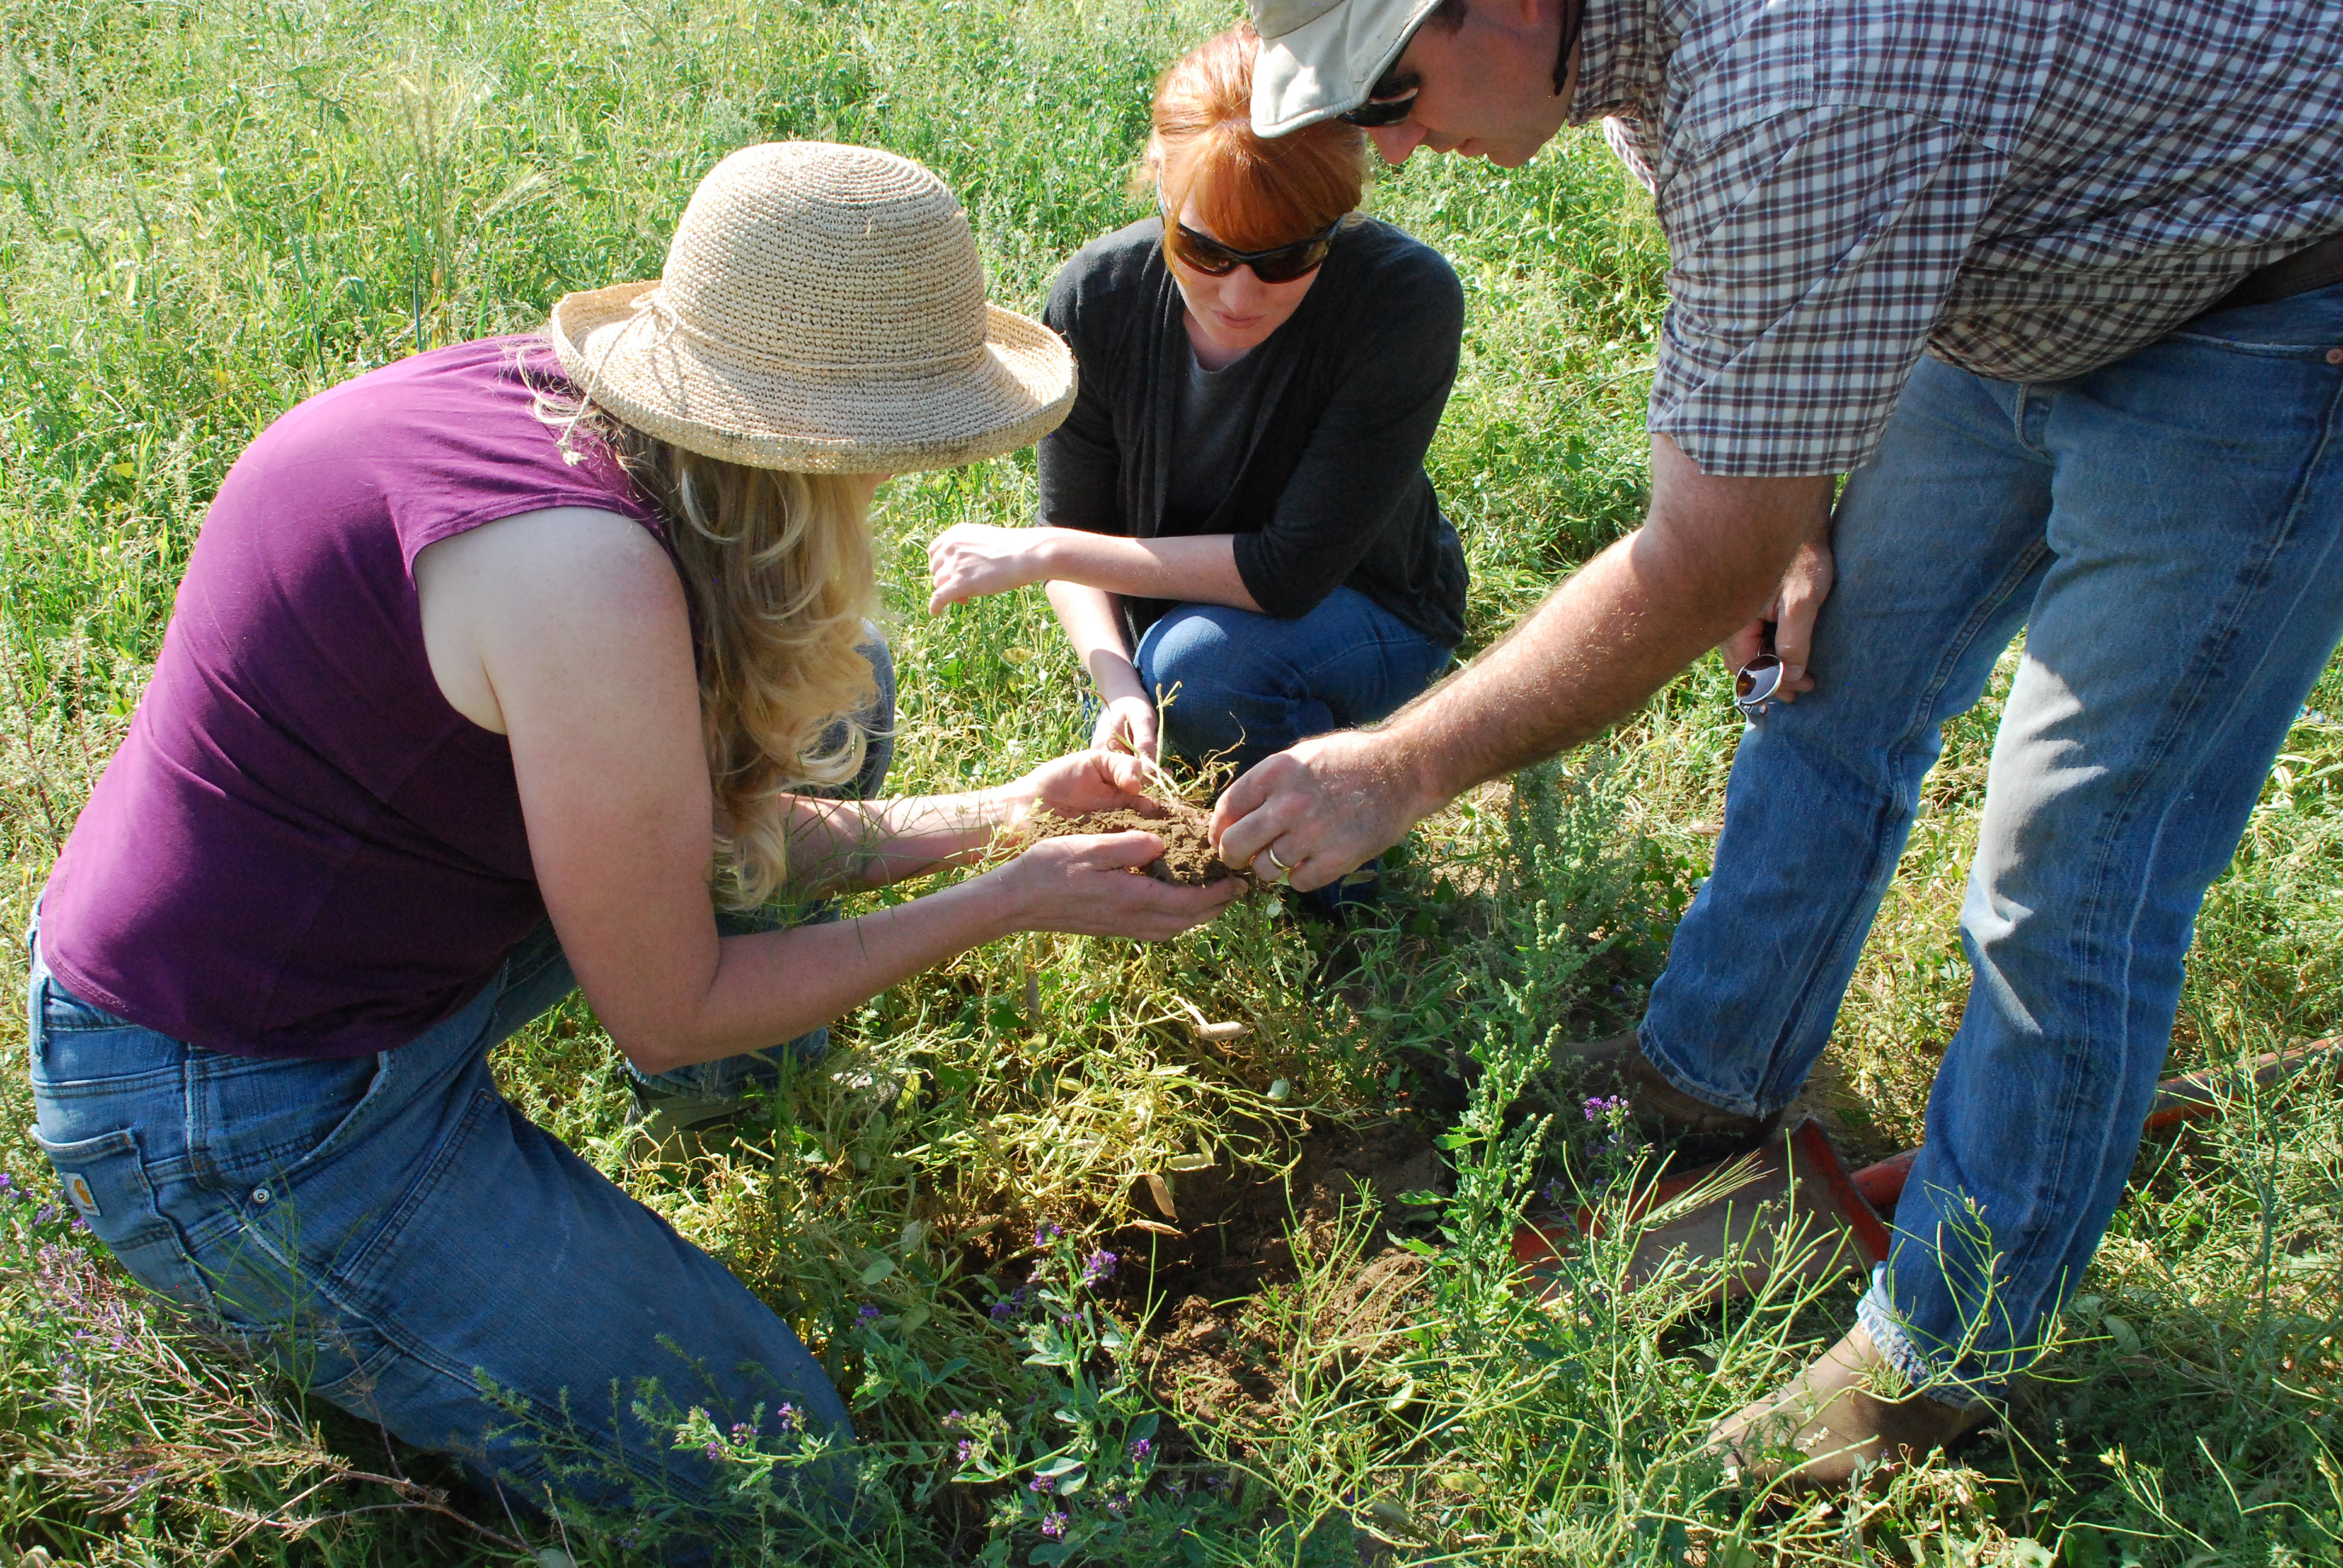 Anna Jones-Crabtree and Doug Crabtree discuss soil health with NRCS Soil Conservationist Amy Kaiser.